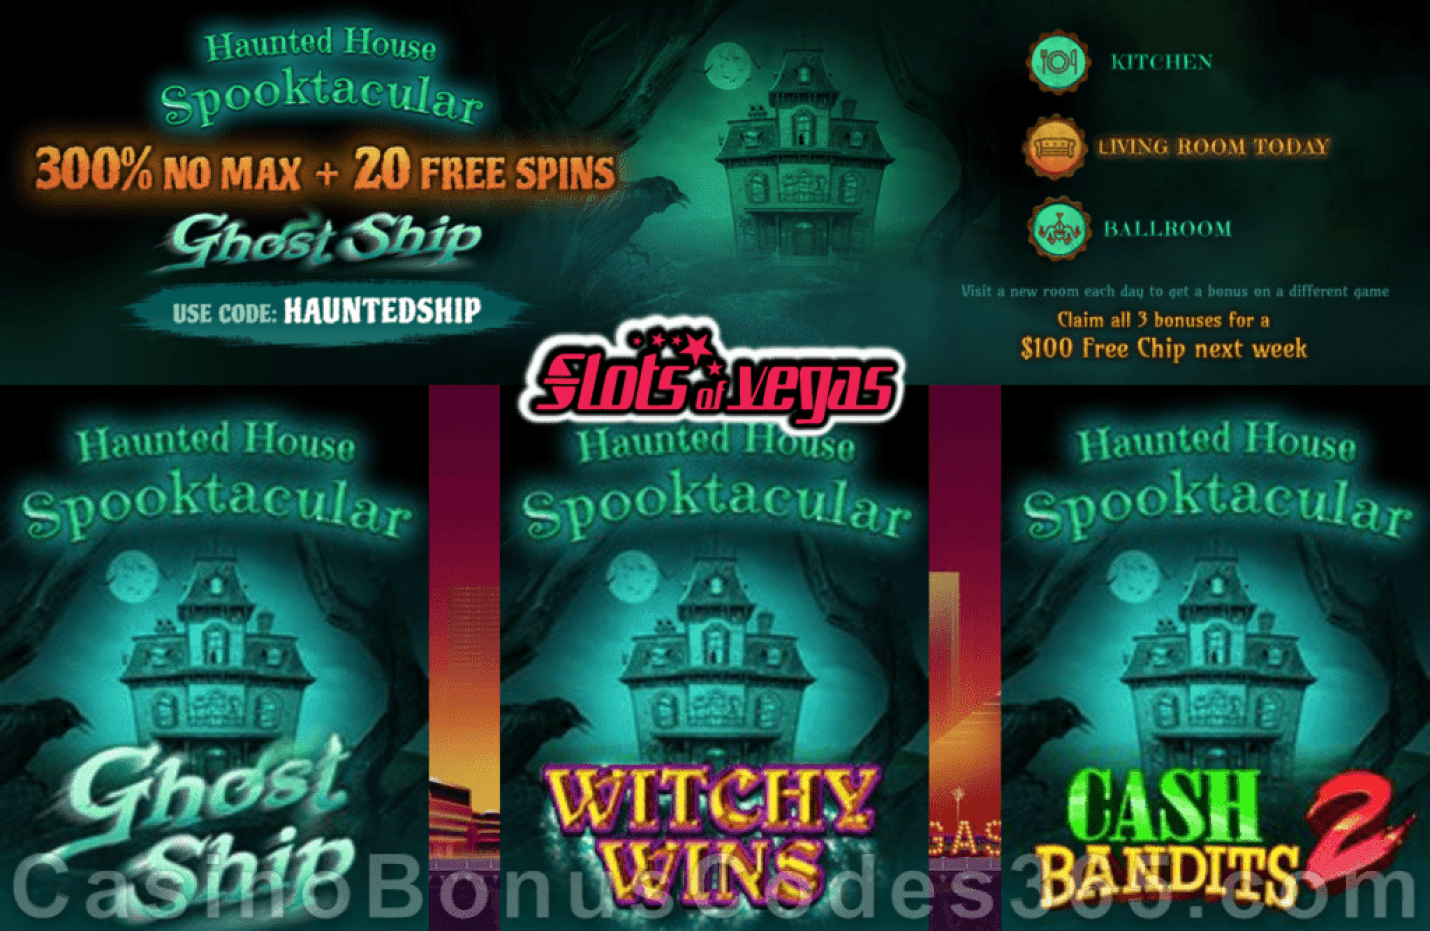 Slots of Vegas Haunted House Spooktacular 300% No Max Bonus plus 20 FREE Spins on top Halloween Super Weekend Offer RTG Witchy Wins Cash Bandits 2 Ghost Ship